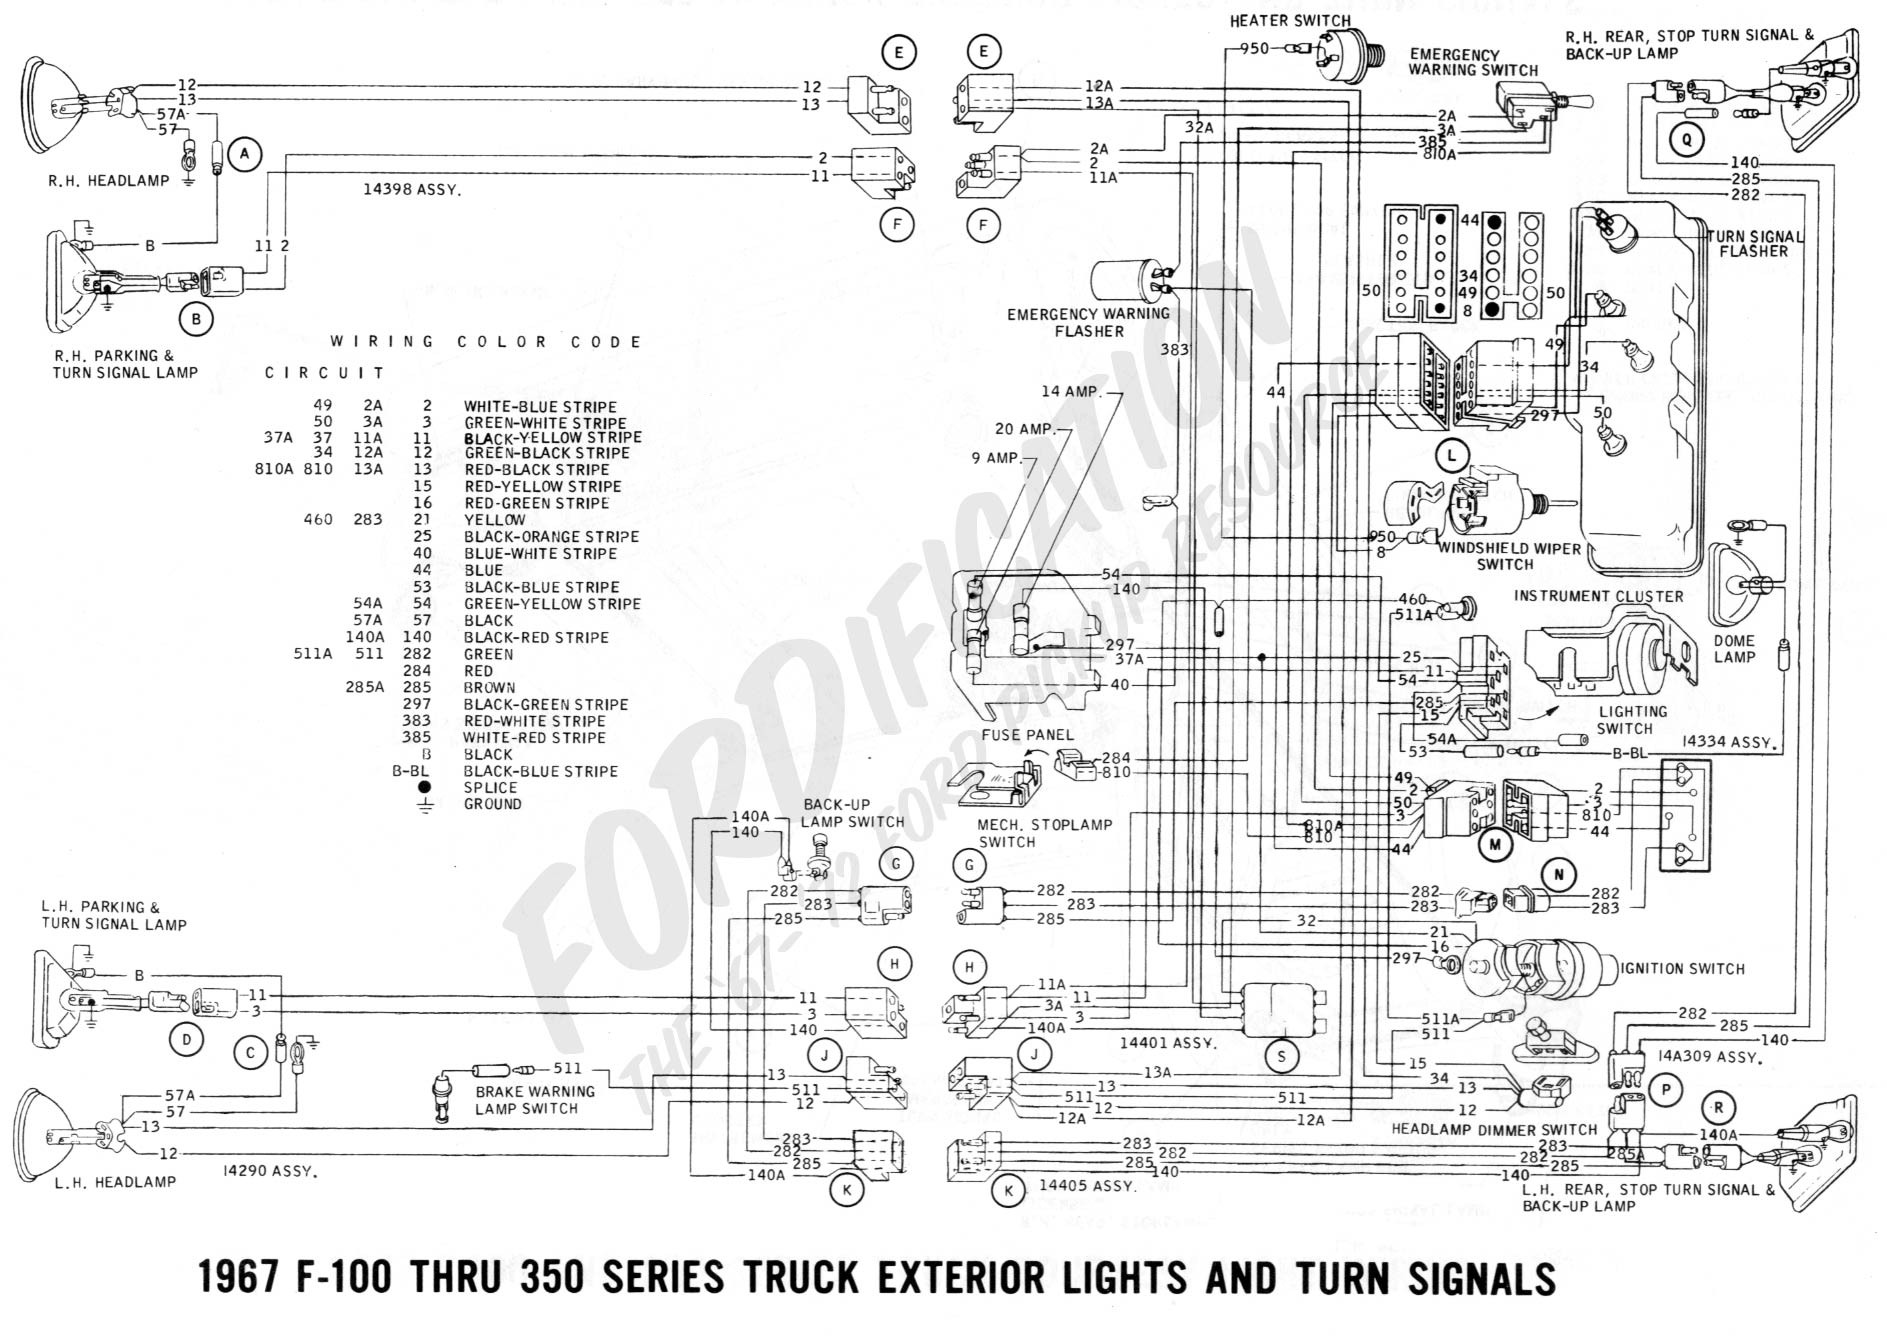 Ford S Max Wiring Diagram - Wiring Diagram Data Today Ford Focus Mk Fuse Box Layout on ford focus check engine light, ford focus fog lights, ford focus wiring diagram pdf, ford focus engine parts diagram, ford focus stereo wiring diagram, ford focus relay chart, ford focus gas mileage, 2002 ford ranger fuse layout, 2005 ford focus fuse layout, ford focus cooling system diagram, ford focus oil, 2003 ford focus fuse layout, ford fusion fuse box, 2005 ford 500 fuse layout, ford fuse panel layout, ford focus fuel line diagram, 2002 ford focus fuse layout, ford focus lowered, 2007 ford focus fuse layout, ford fuse box diagram,